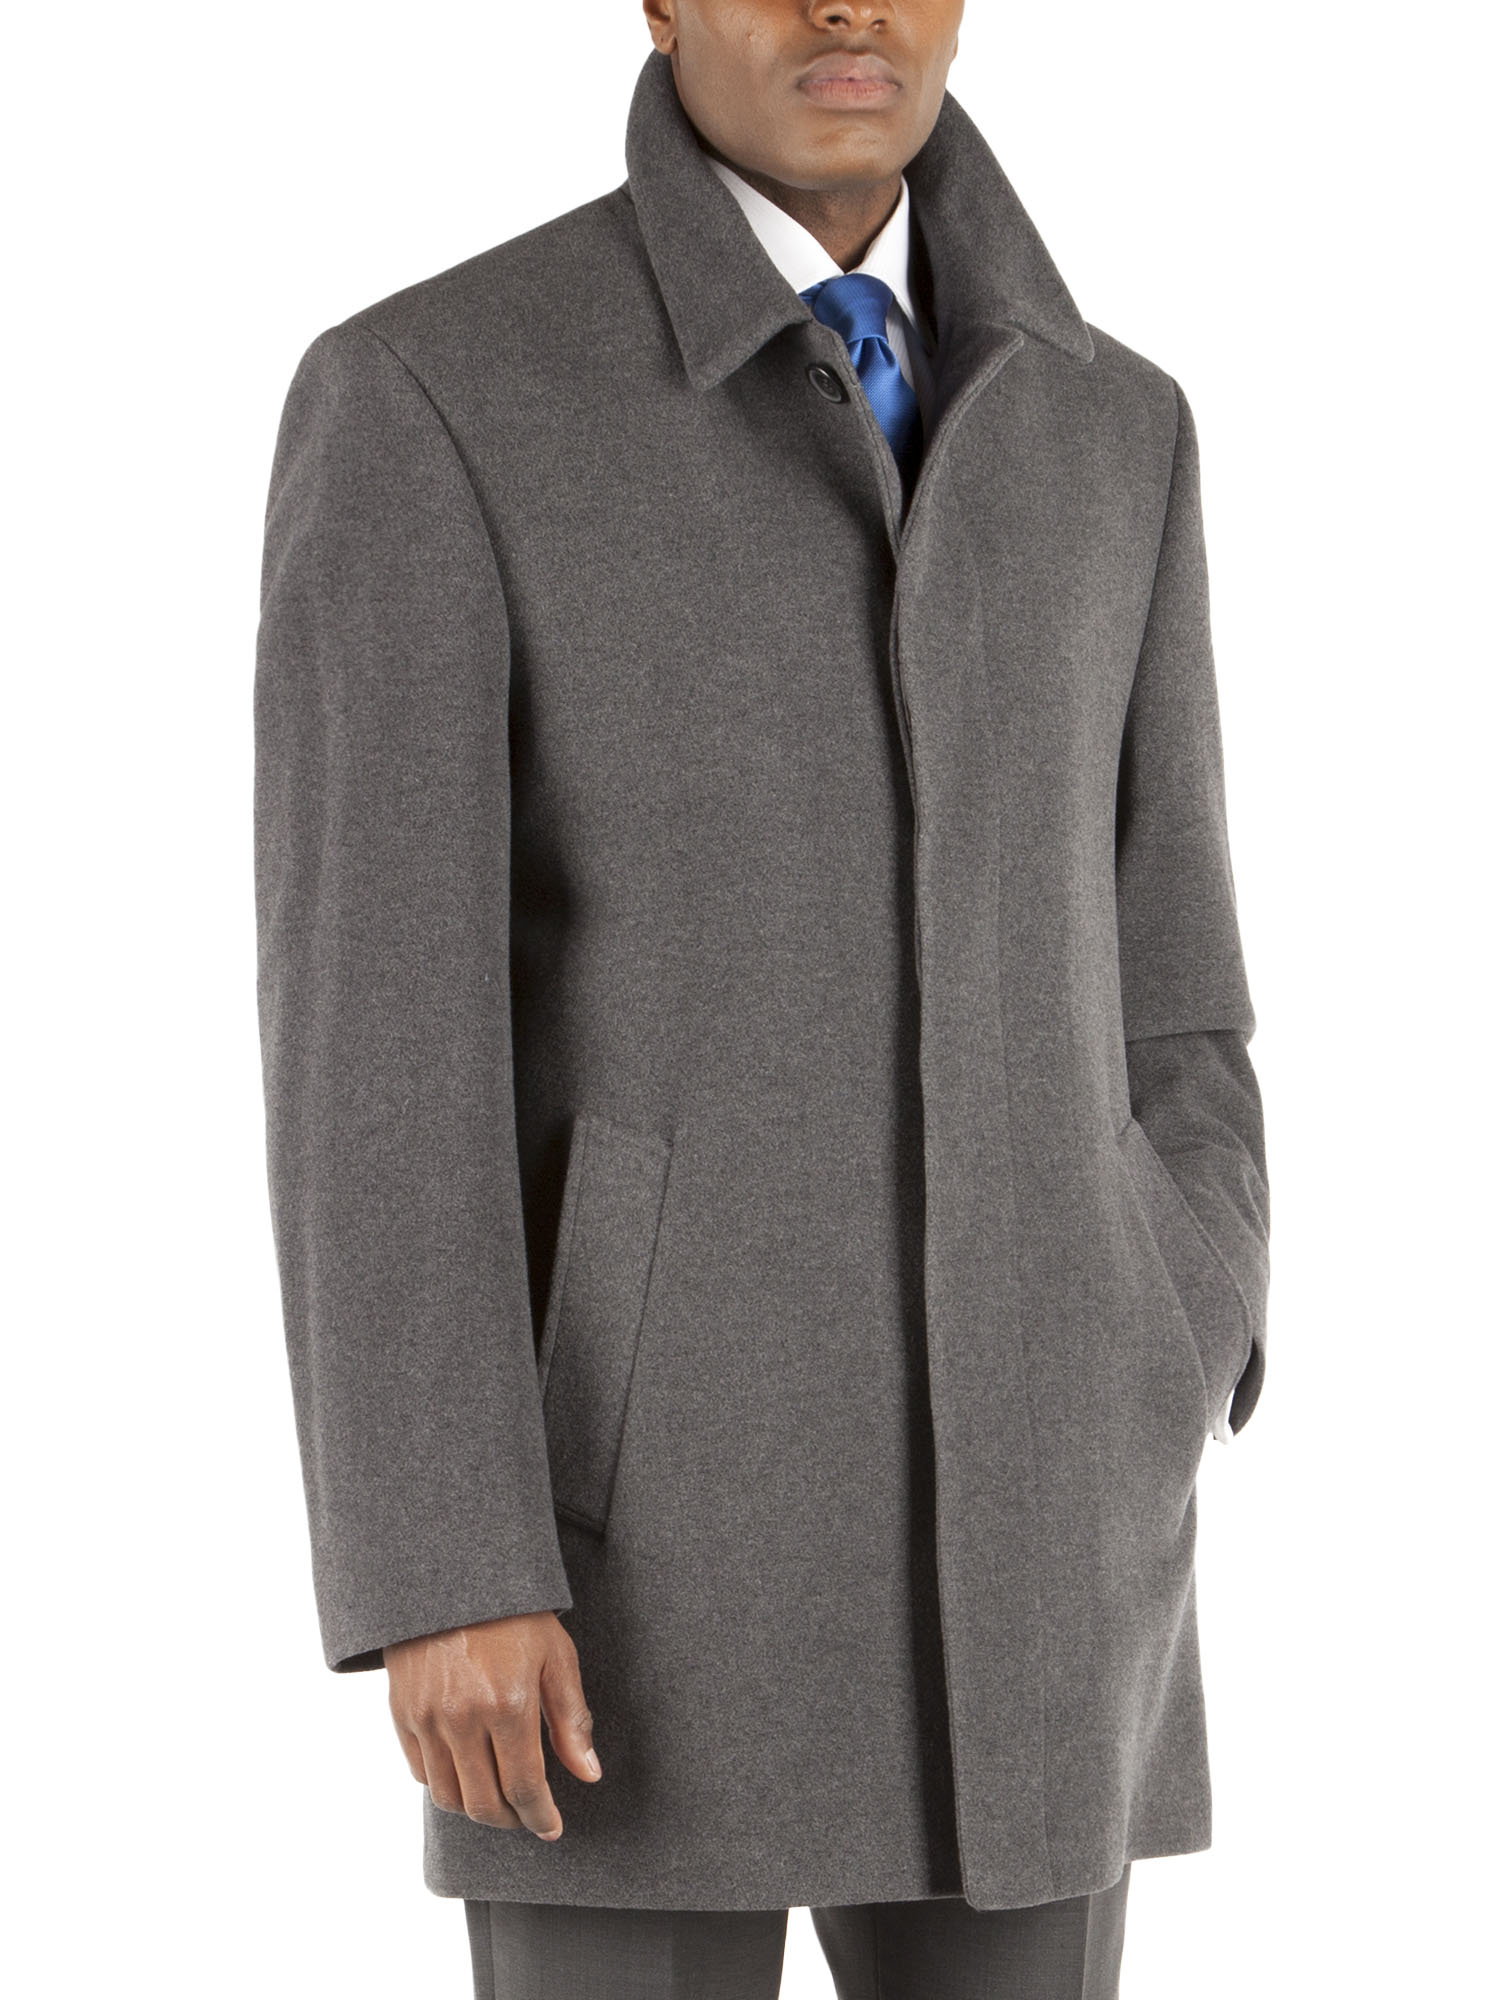 MENS MID GREY WOOL CASHMERE CAR COAT- currently unavailable